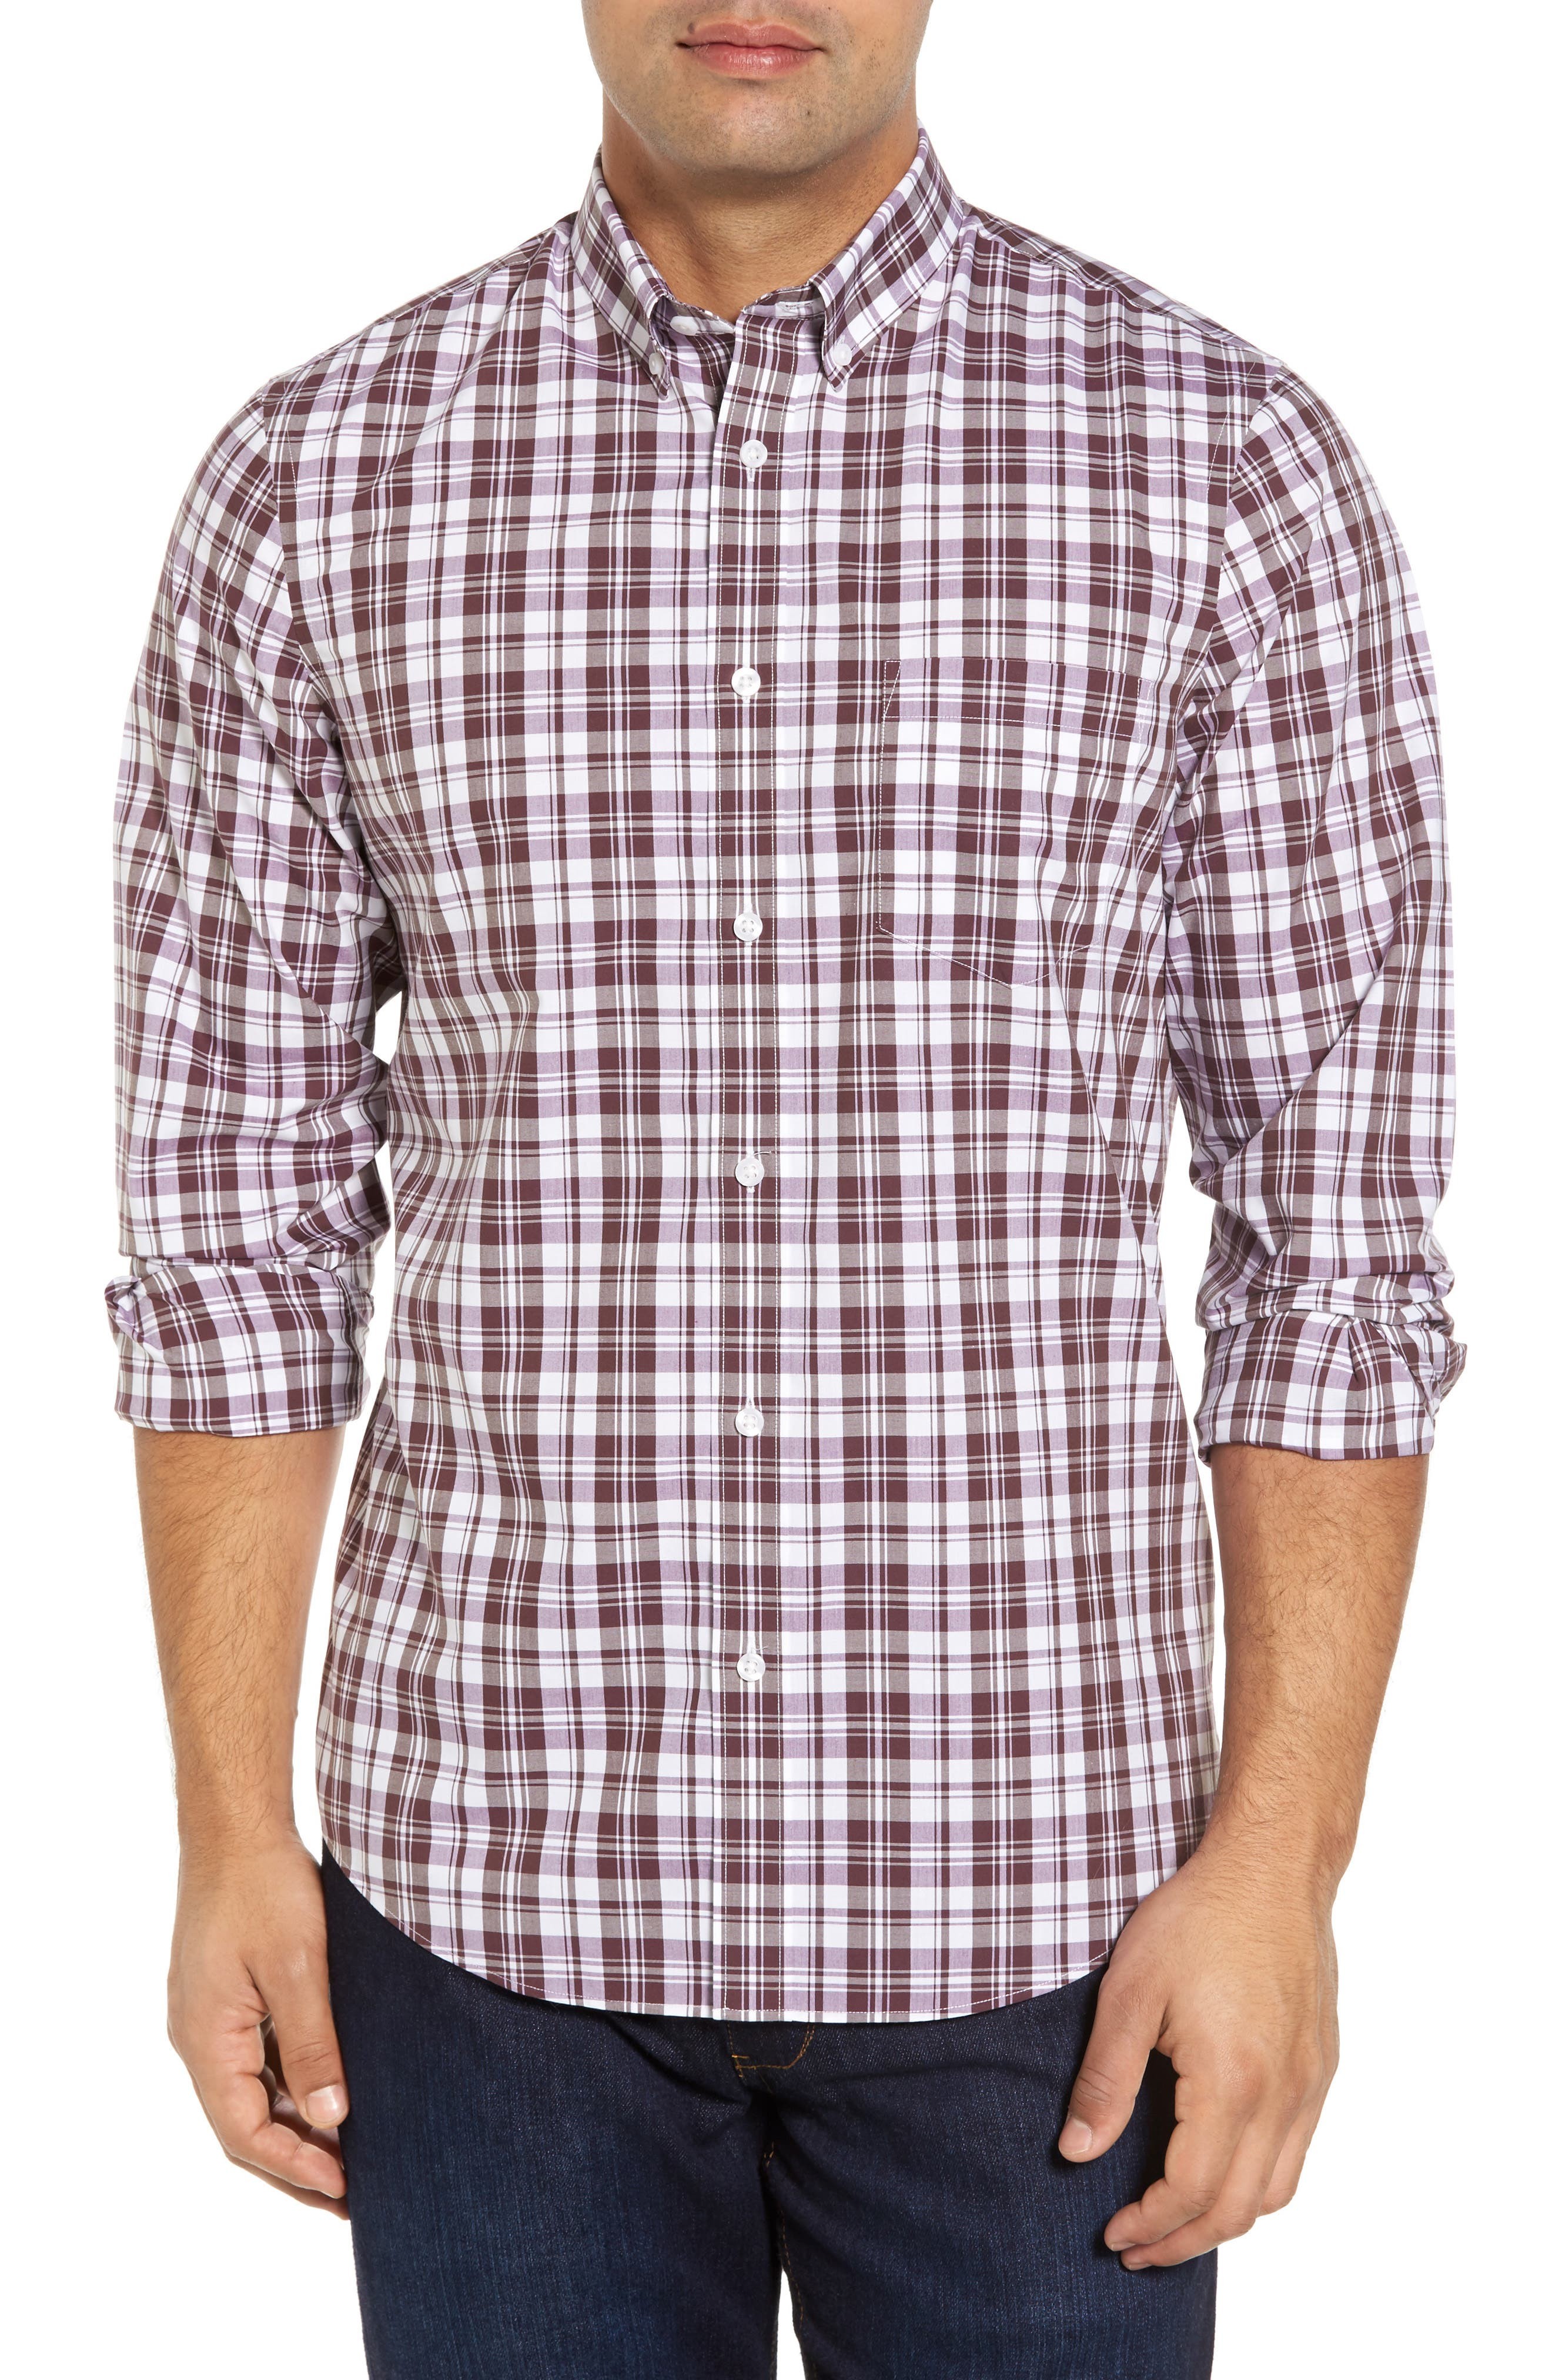 Main Image - Nordstrom Men's Shop Smartcare™ Regular Fit Plaid Sport Shirt